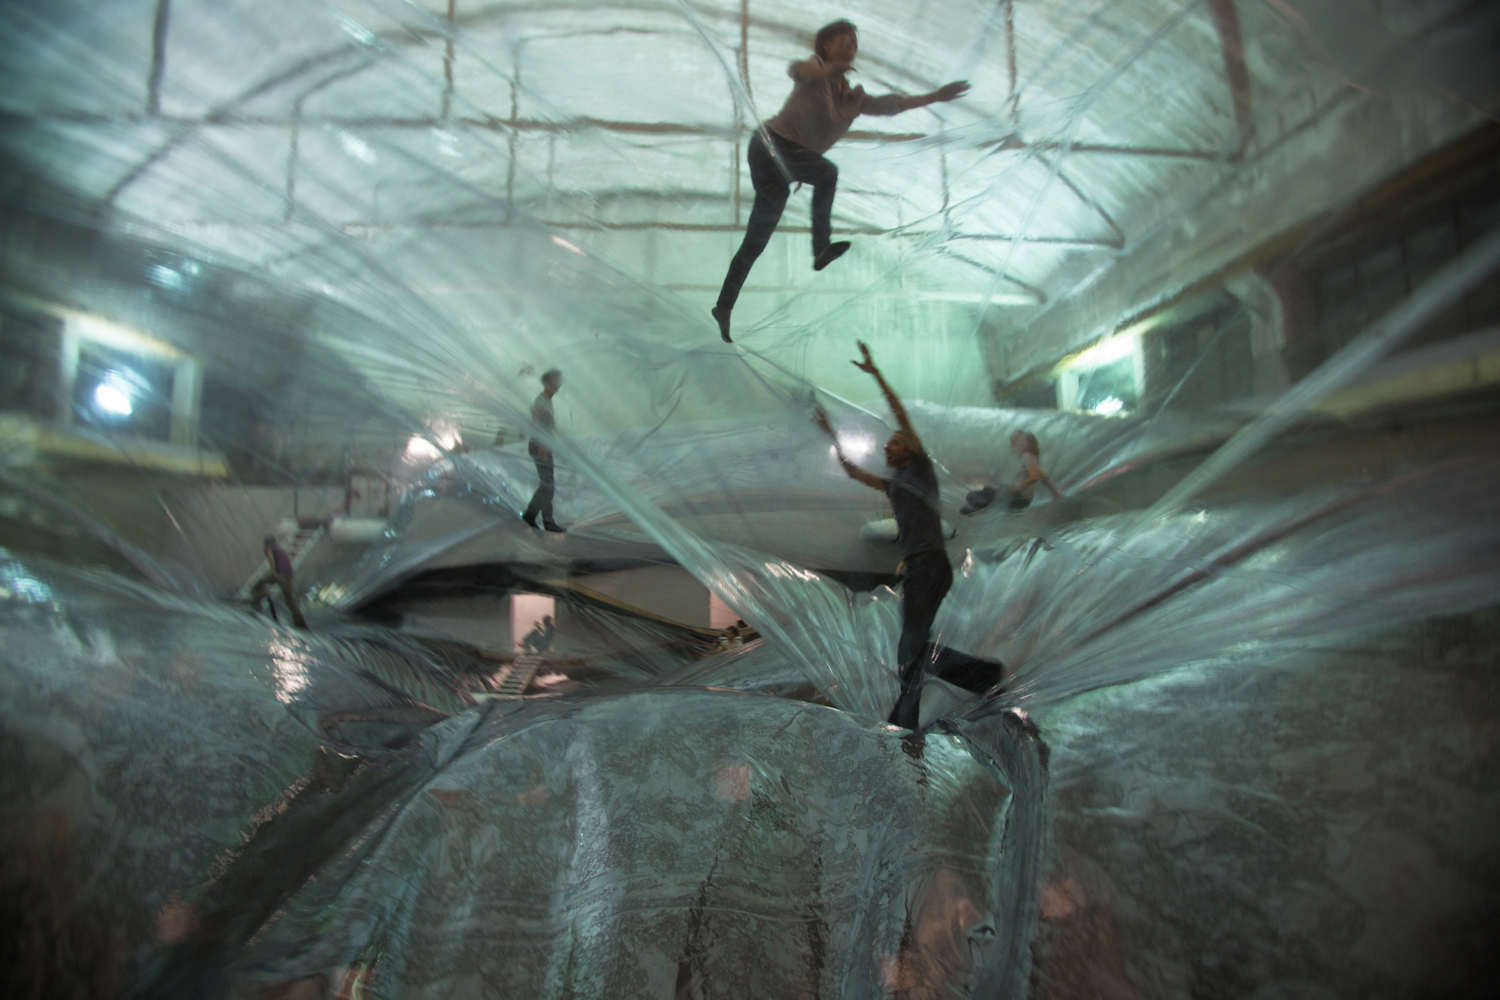 Tomas Saraceno, On Space Time Foam' Exhibition, 2012